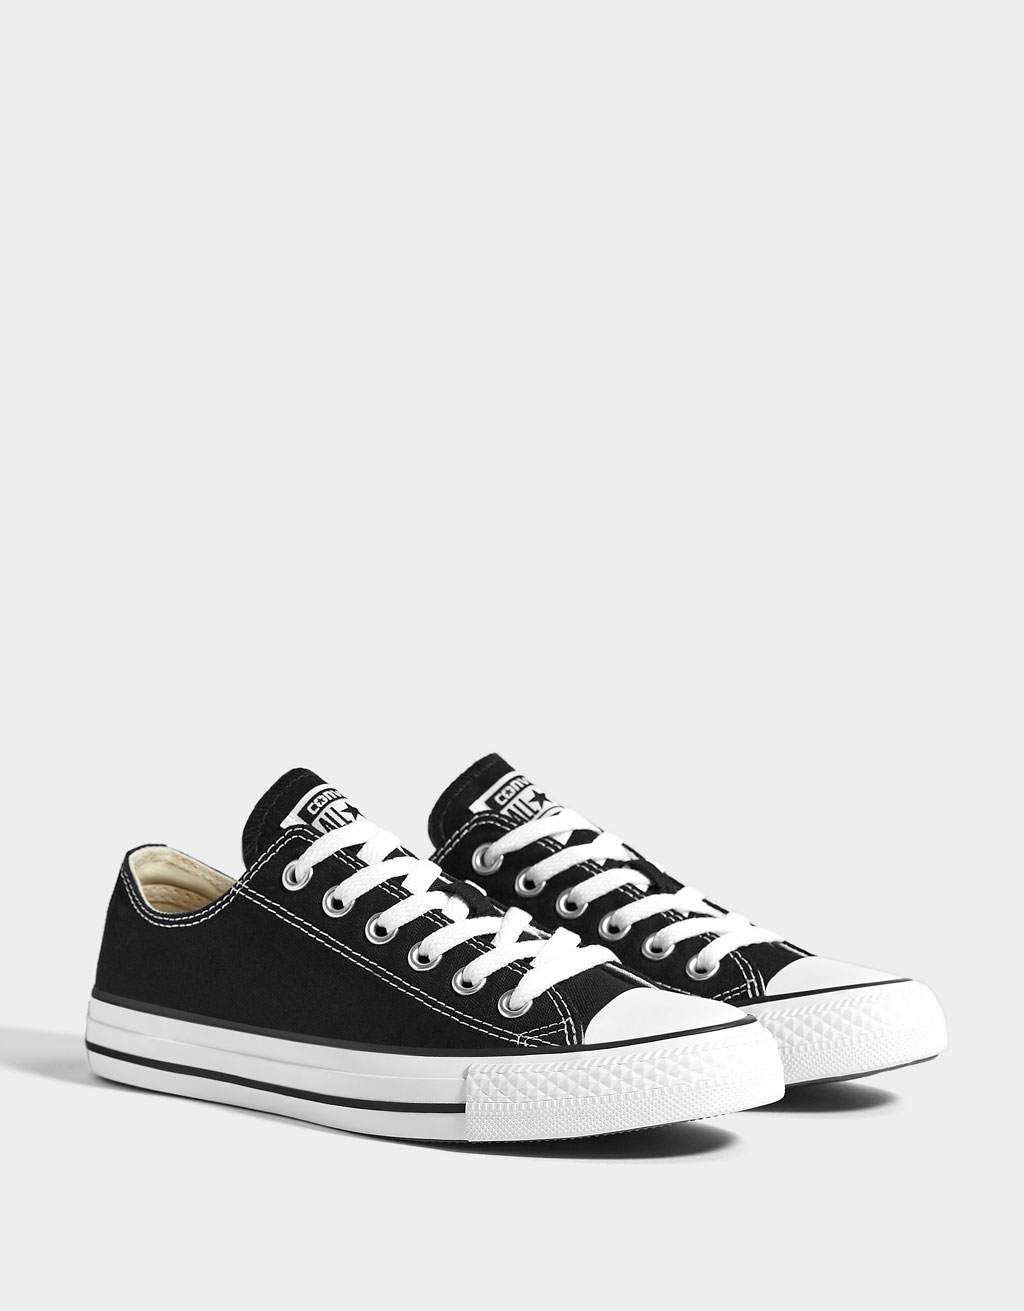 Riidest tennised CONVERSE ALL ⋆ STAR meestele